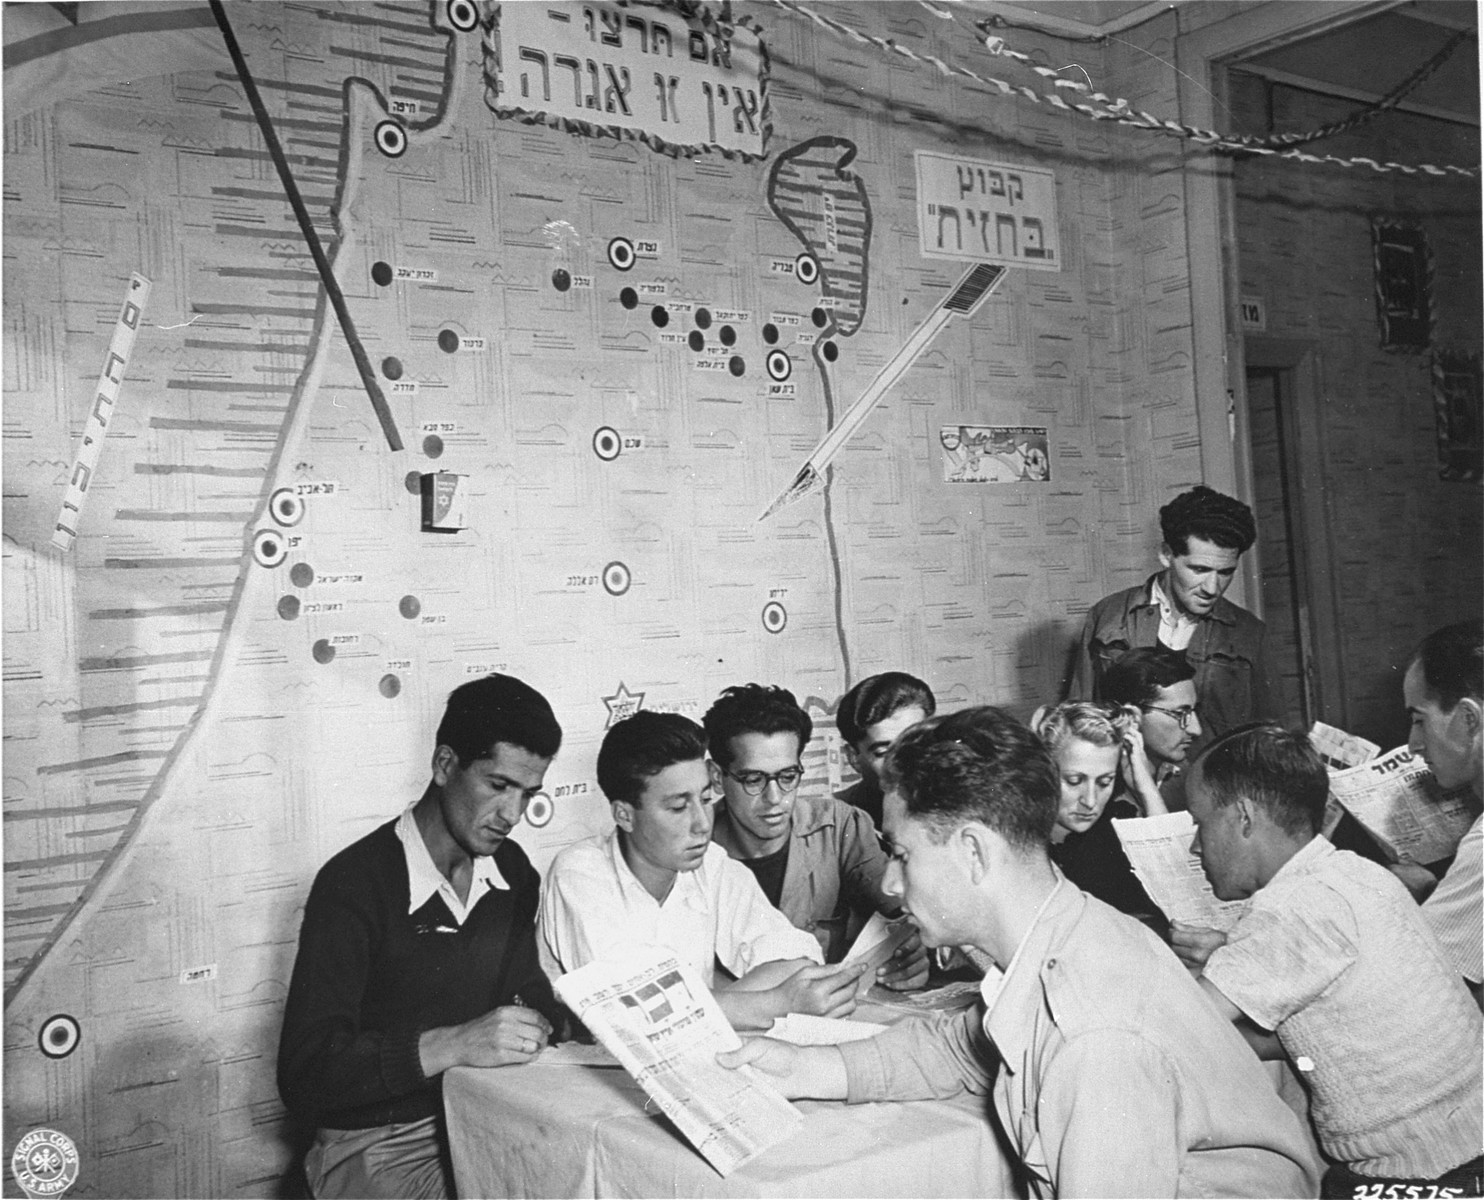 Jewish DPs study in the reading room of a vocational training school supported by the American Joint Distribution Committee.